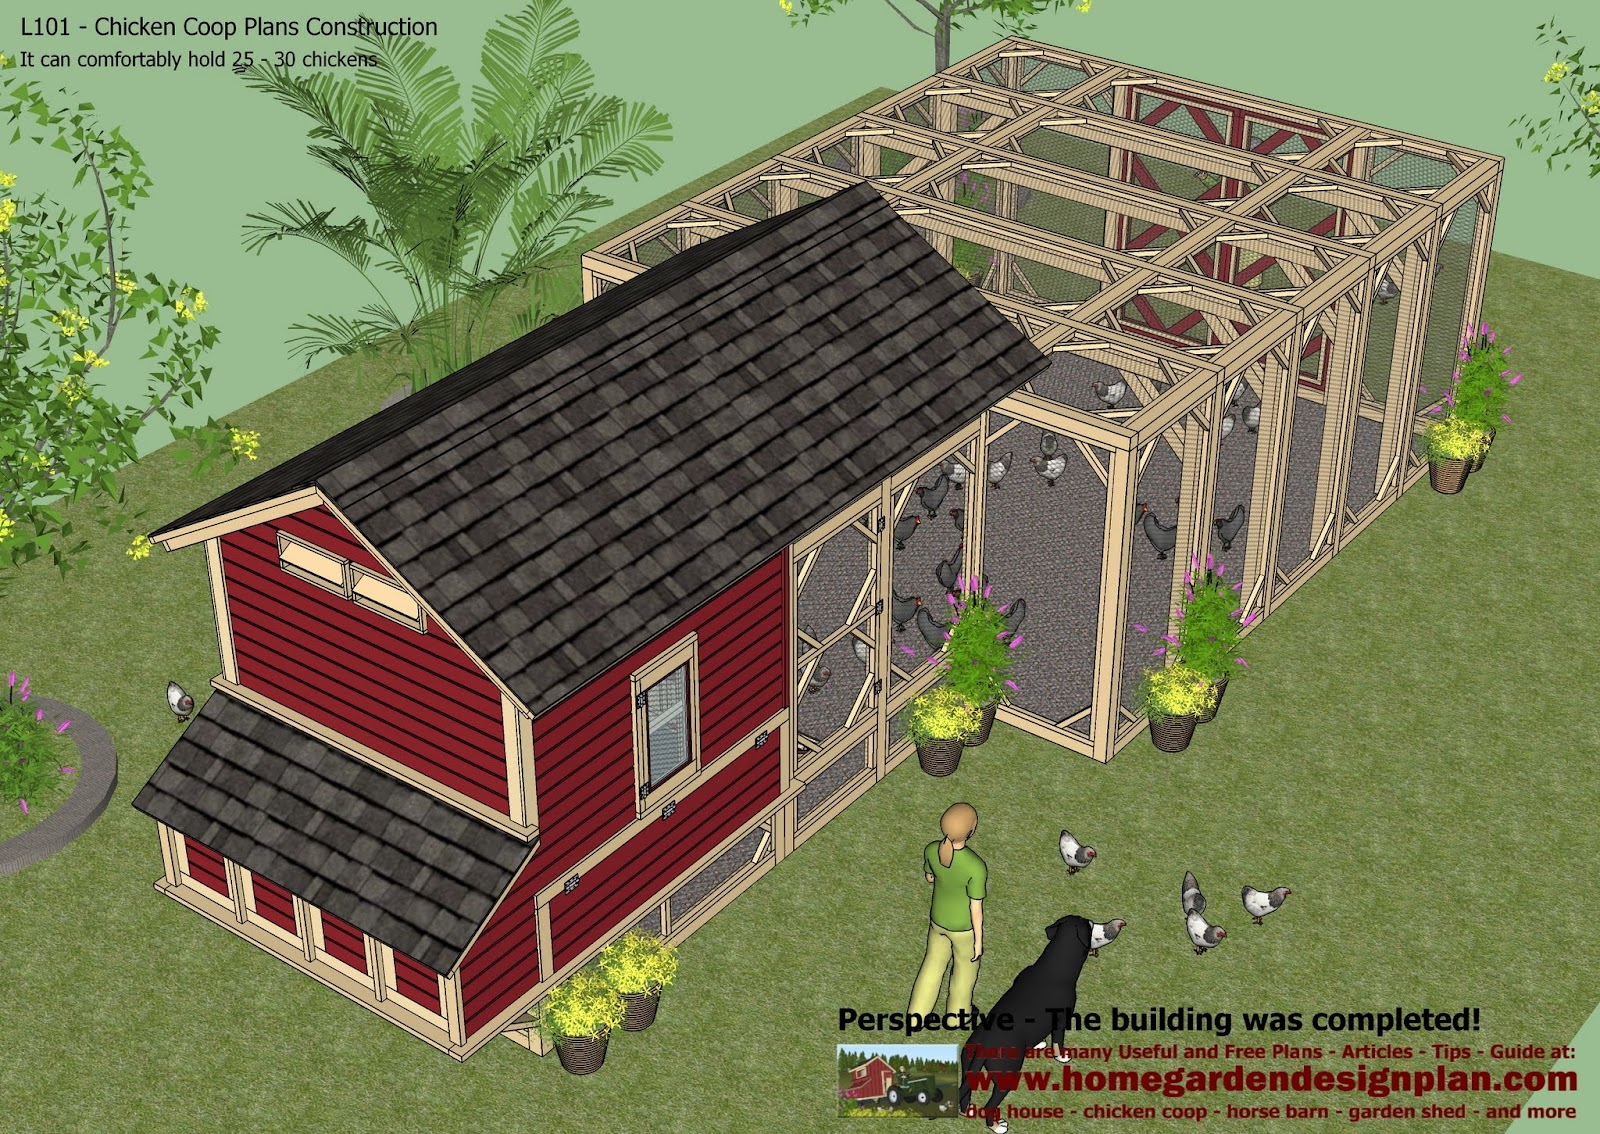 Home garden plans l101 chicken coop plans construction for Making a chicken coop